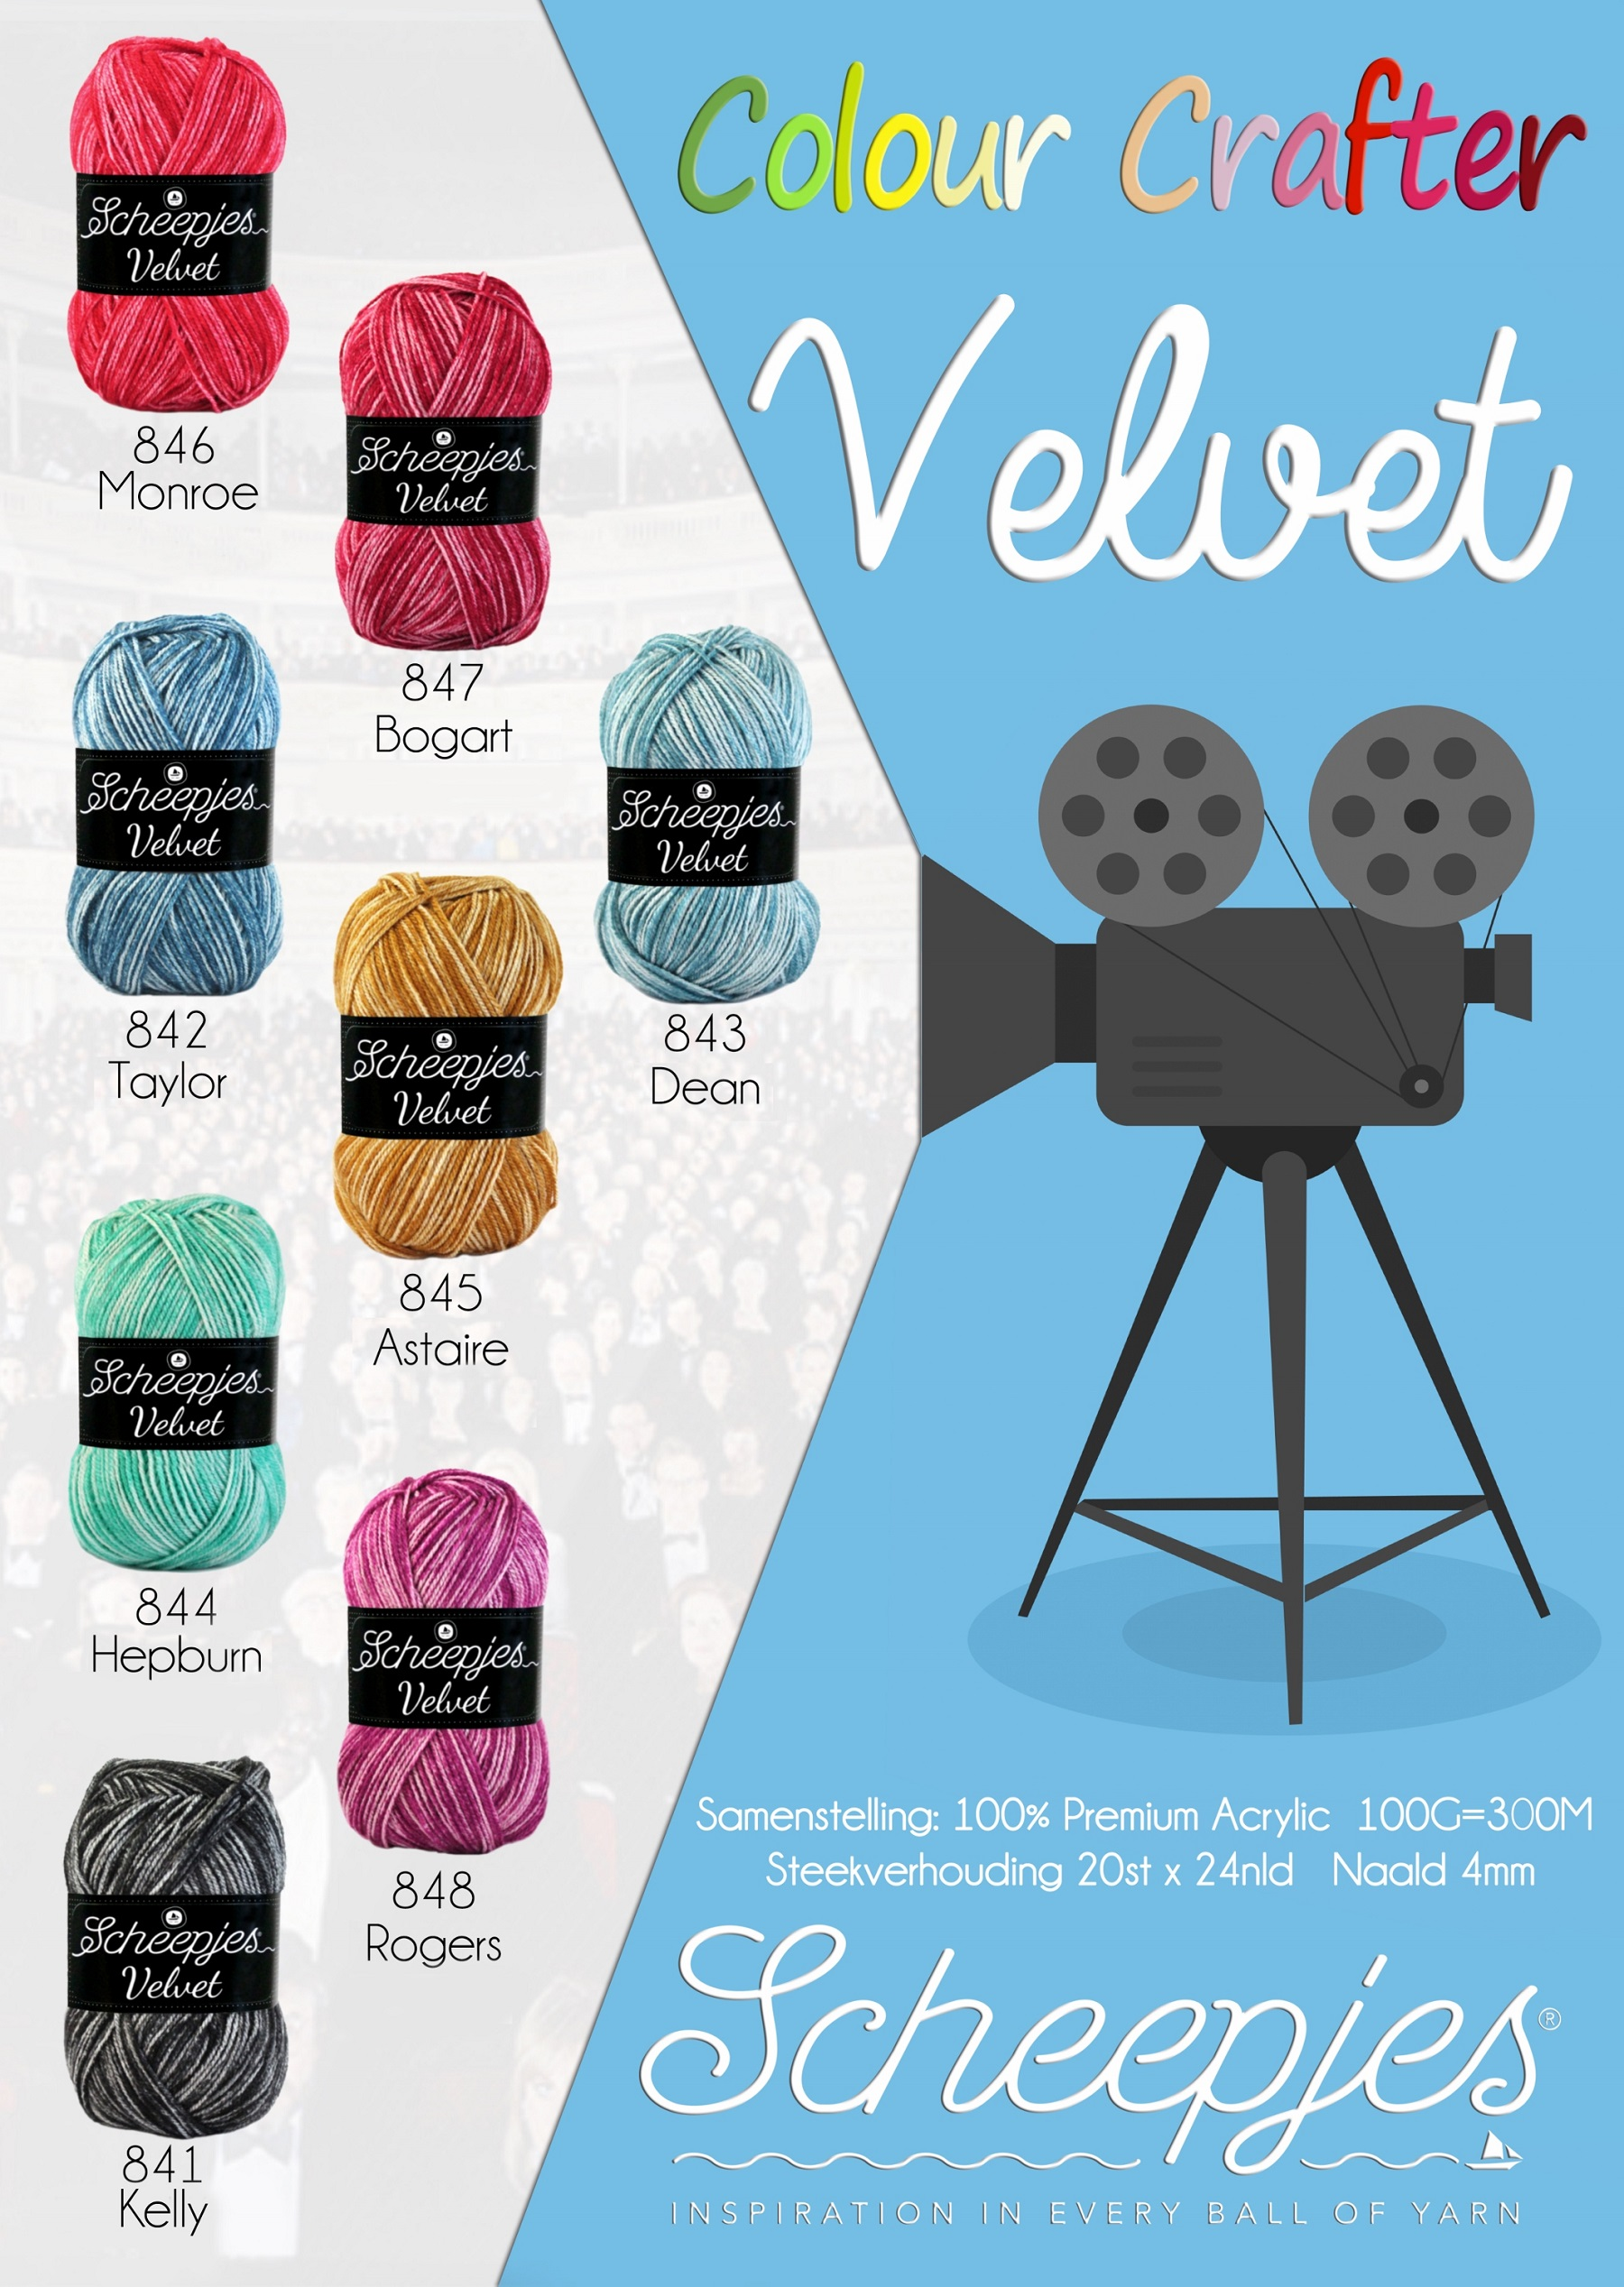 colour crafter velvet